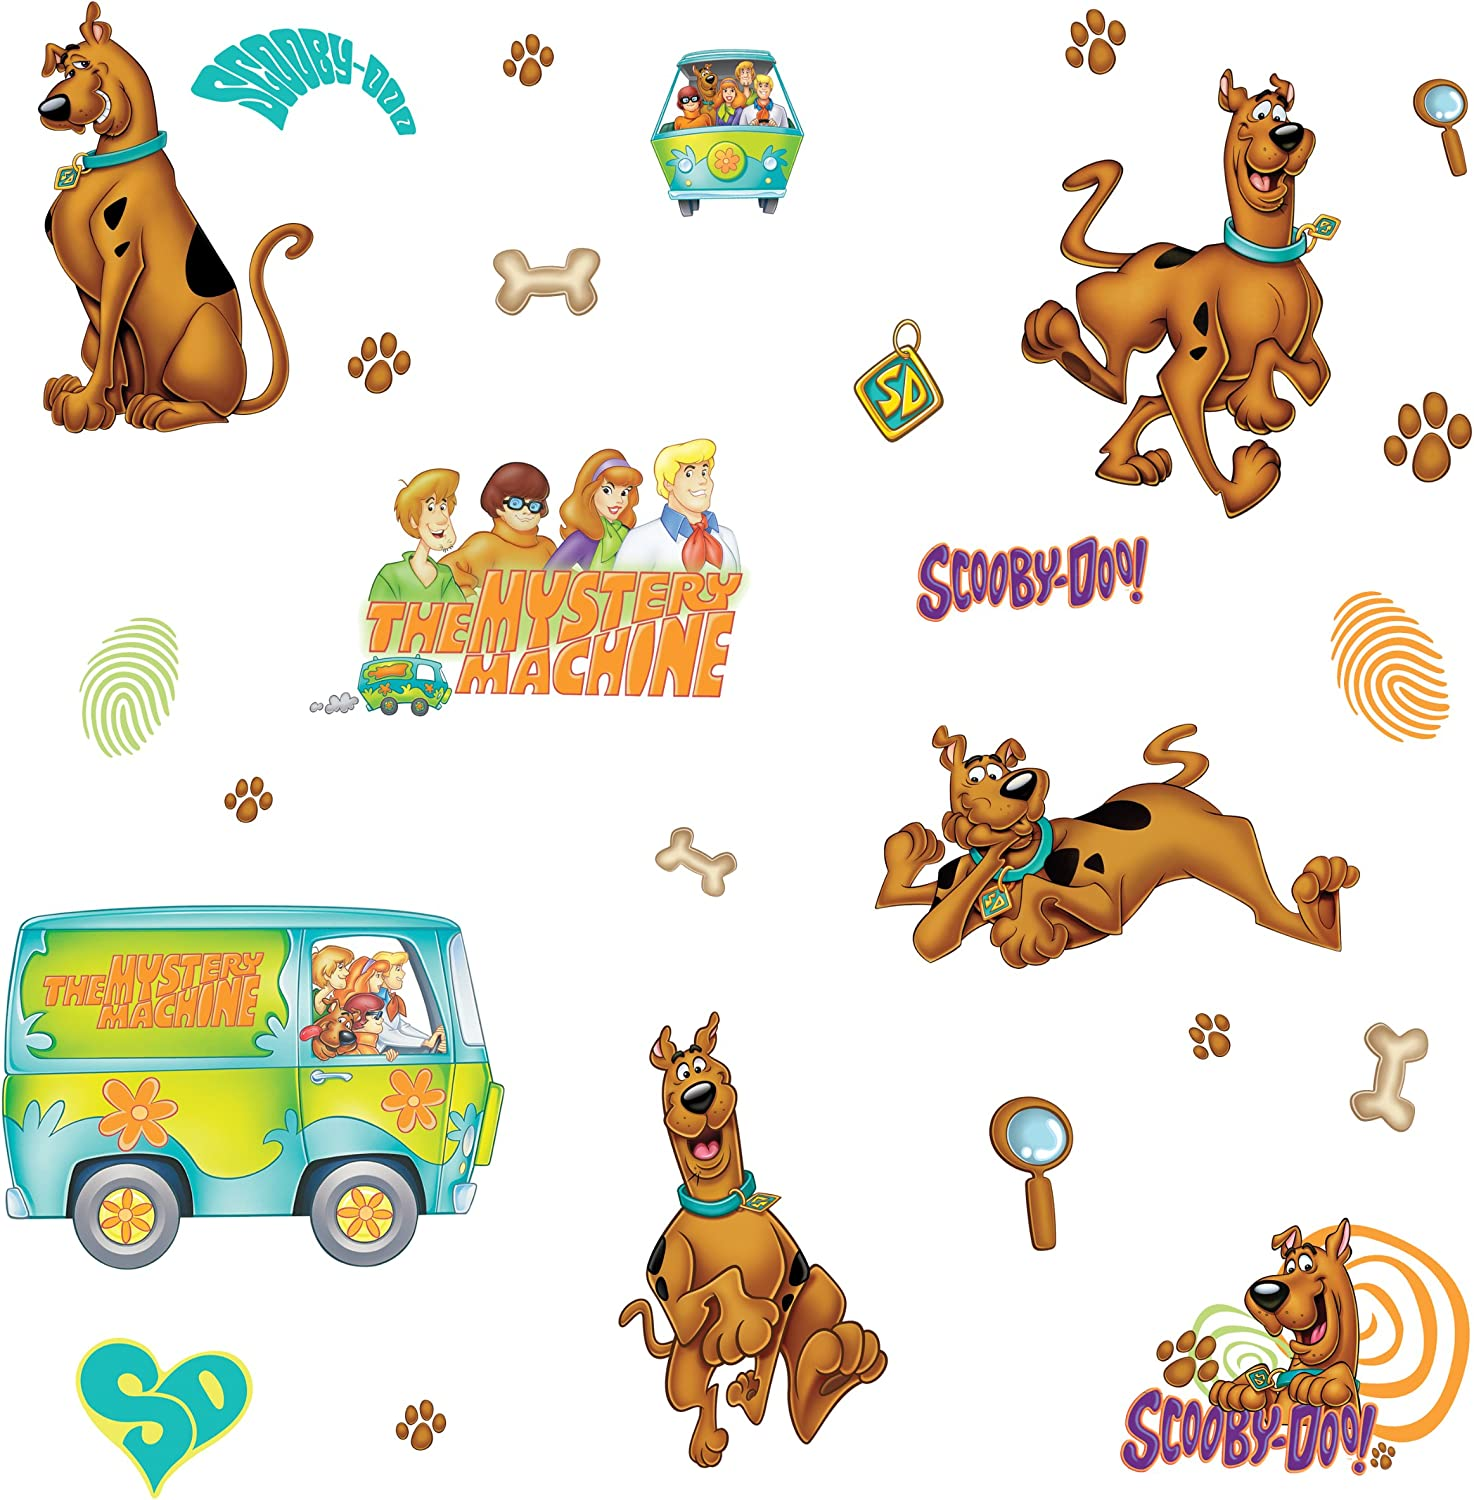 RoomMates Scooby Doo Peel and Stick Wall Decals